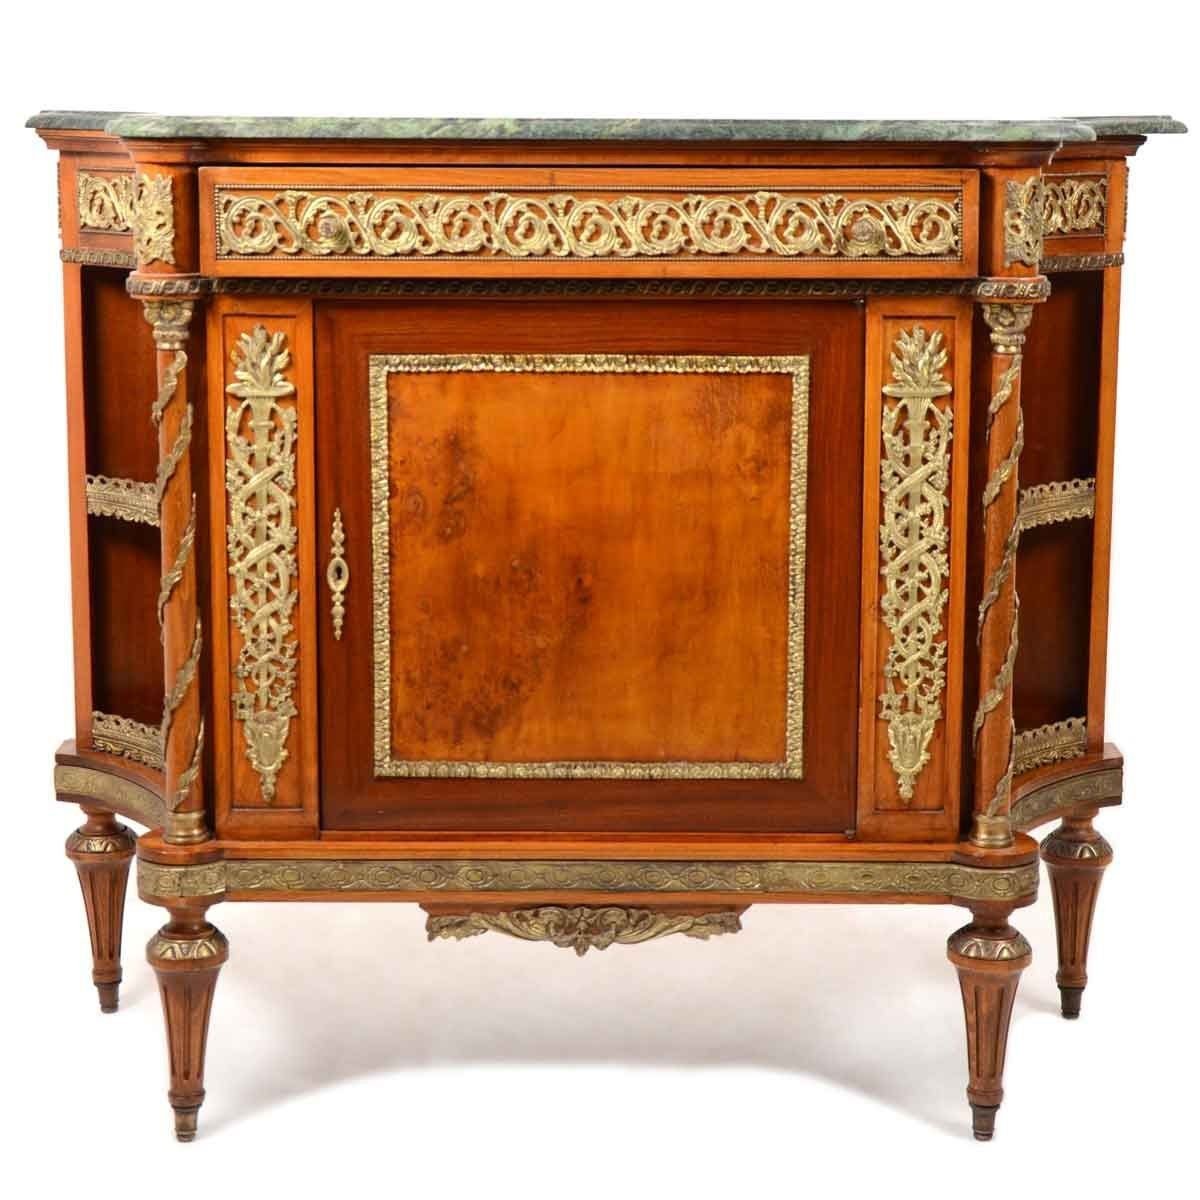 Cabinet S-1017